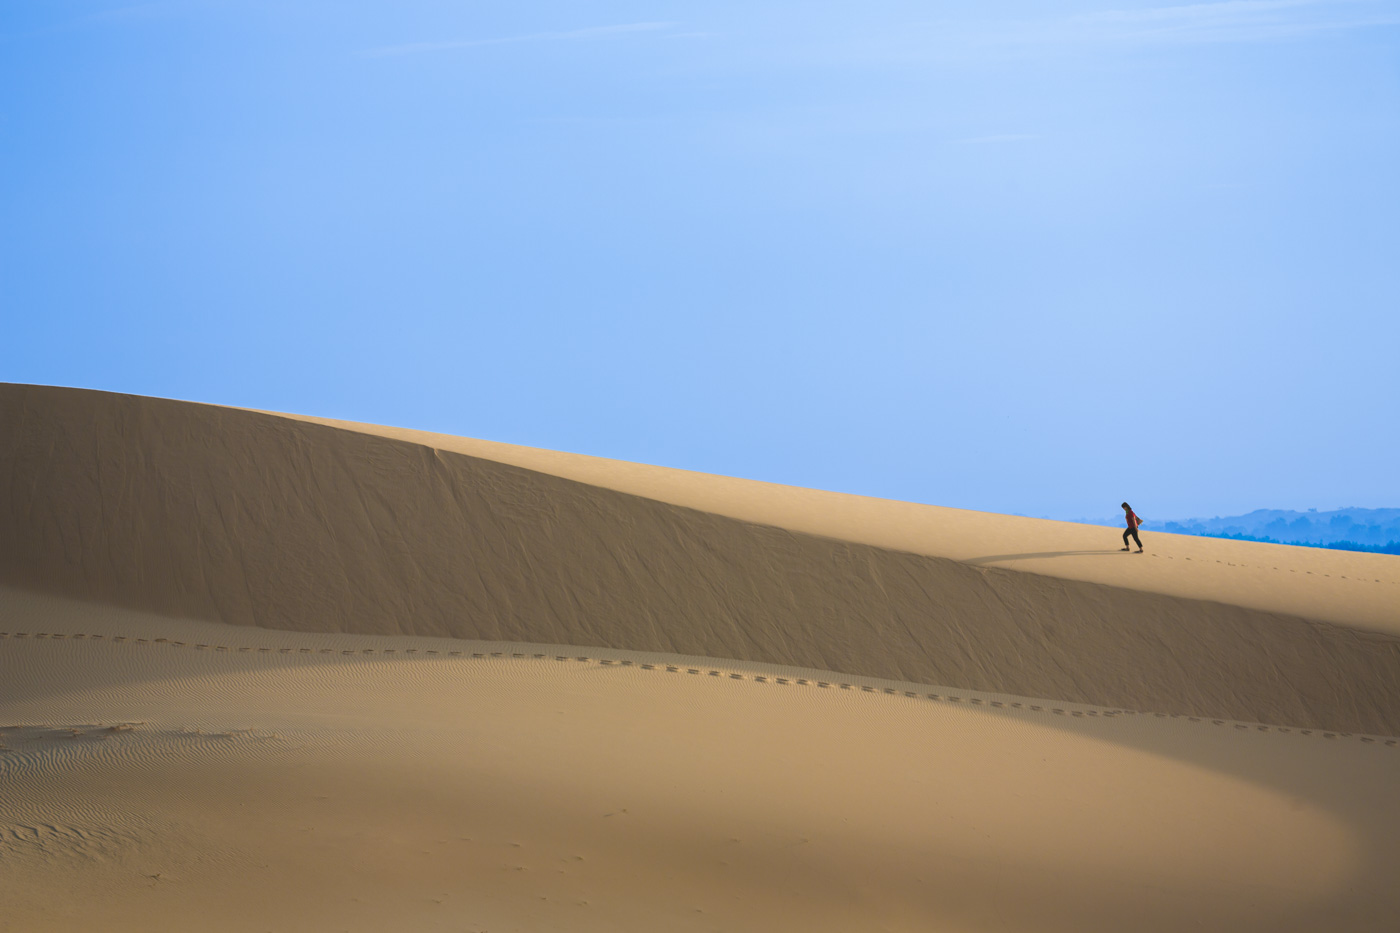 Hiker on Dunes. Mui Ne, Vietnam